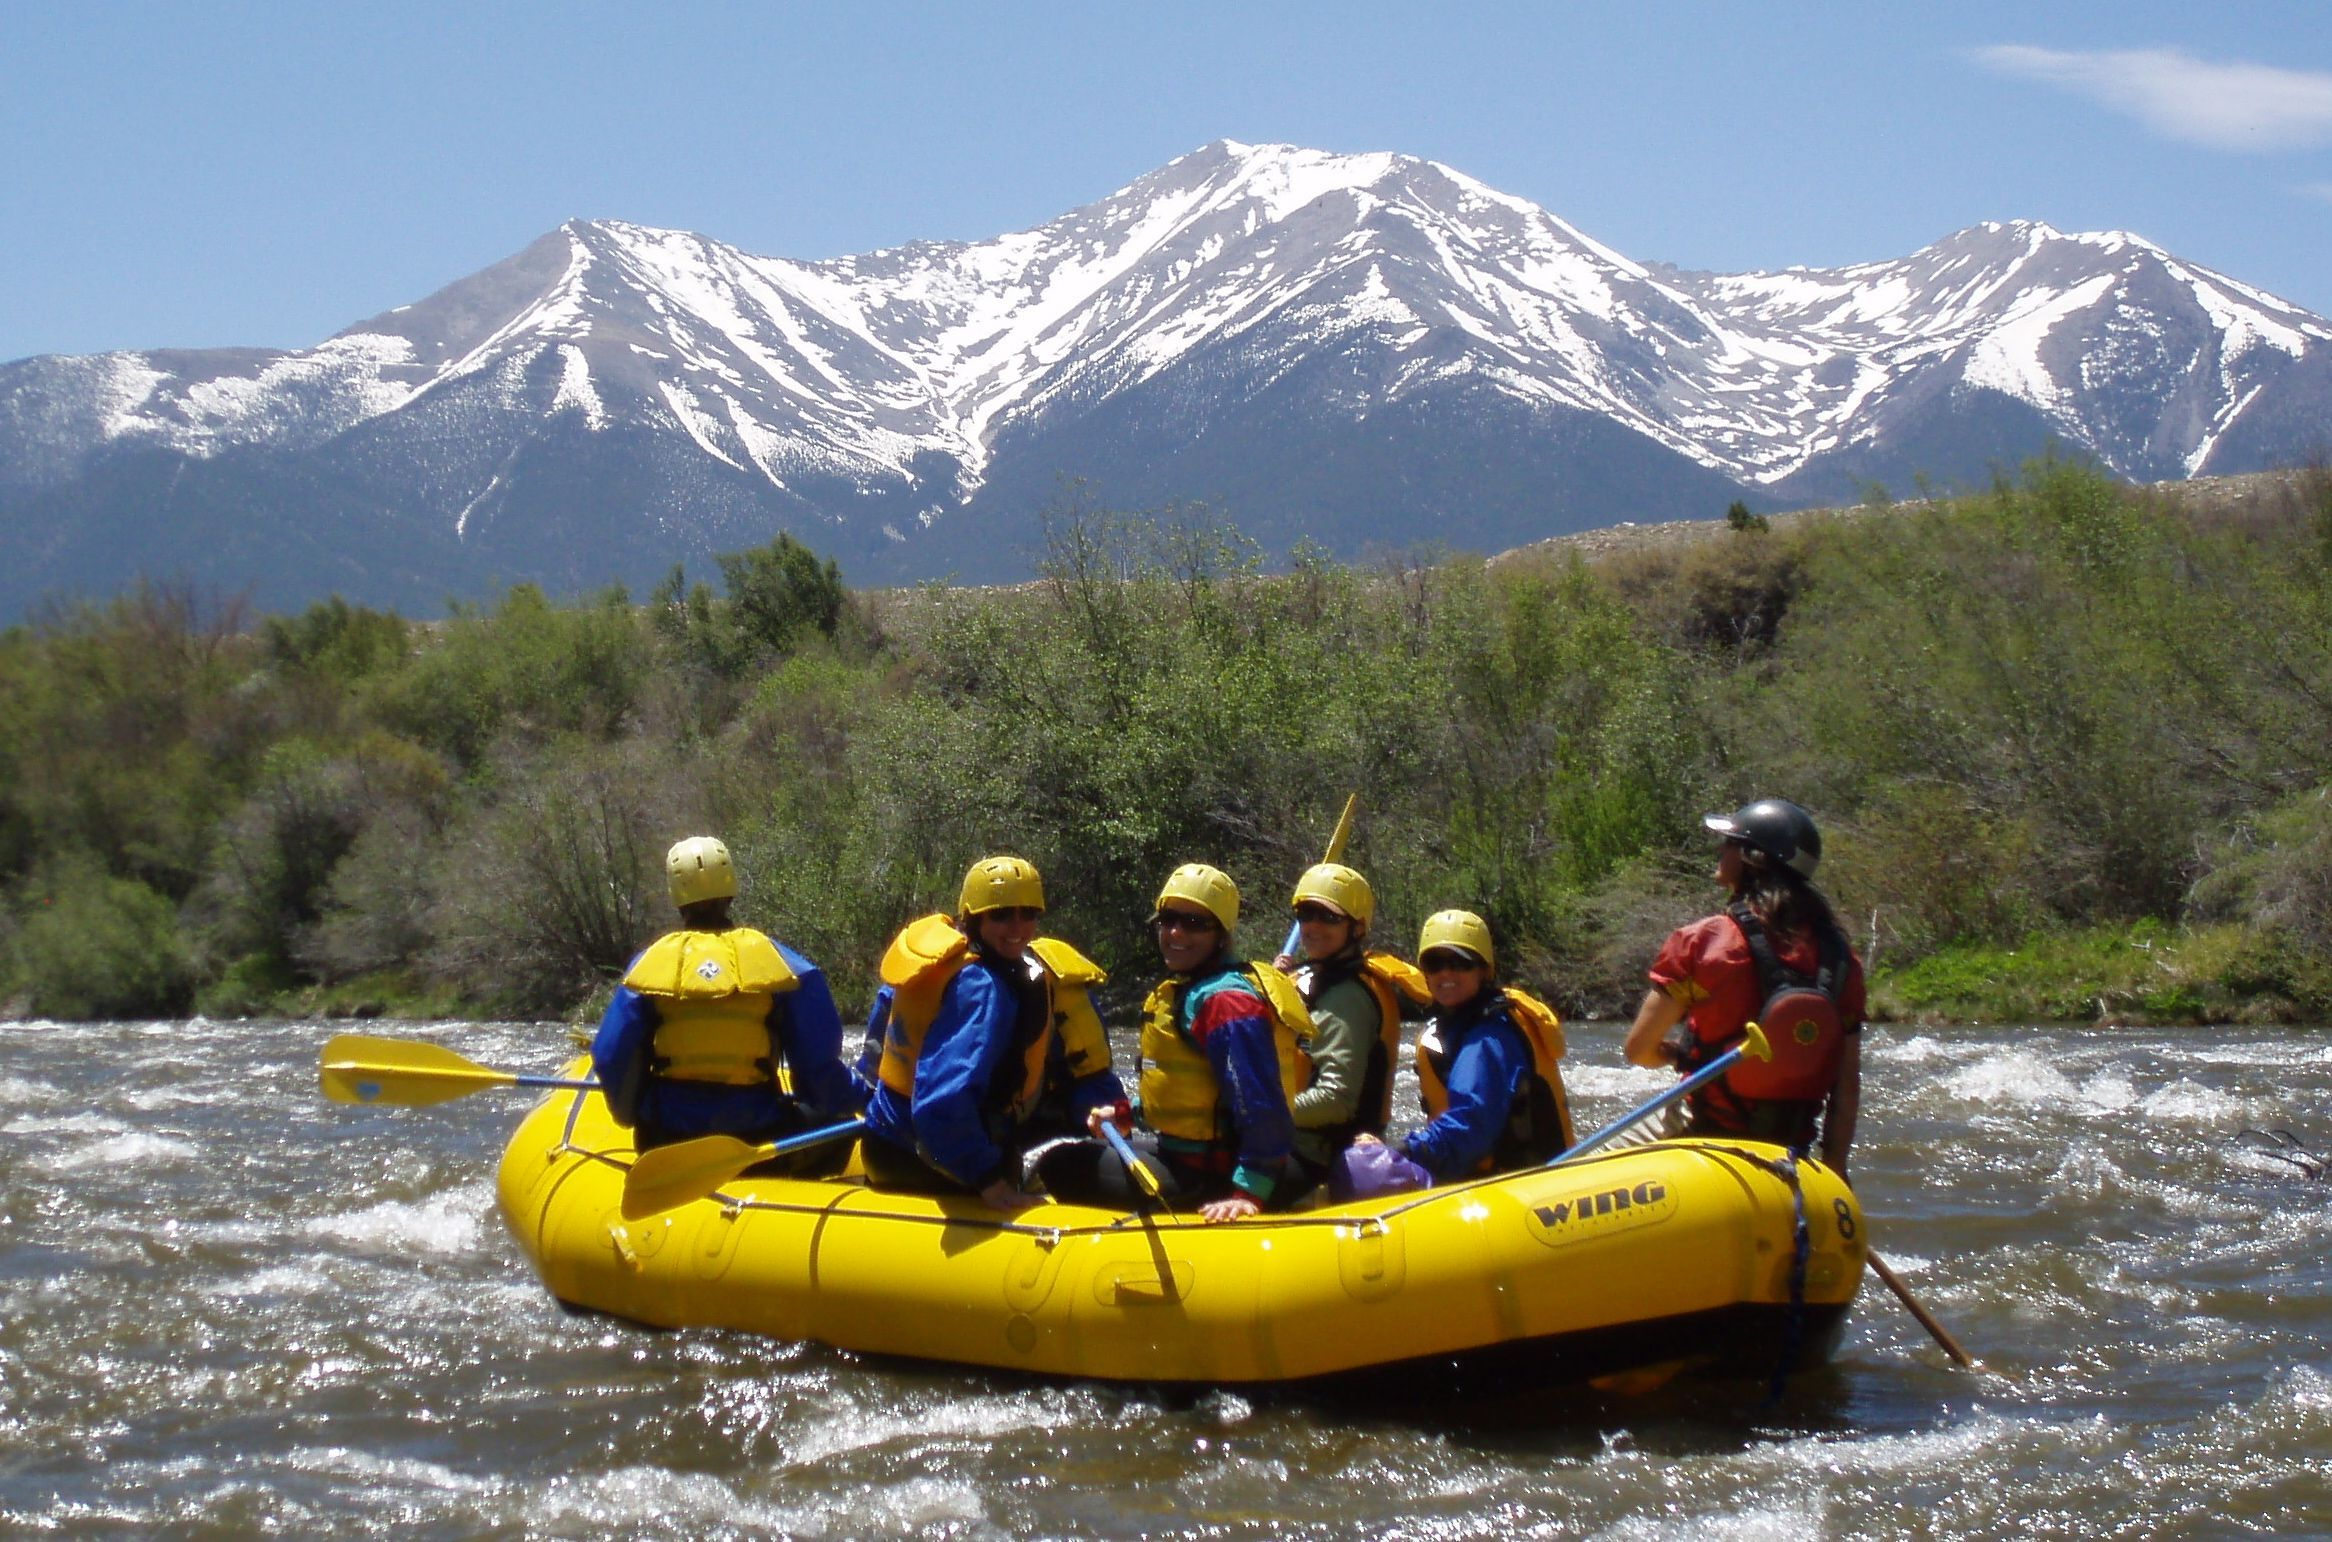 I wanna go here!! | Rafting in colorado, Whitewater rafting, Colorado river rafting